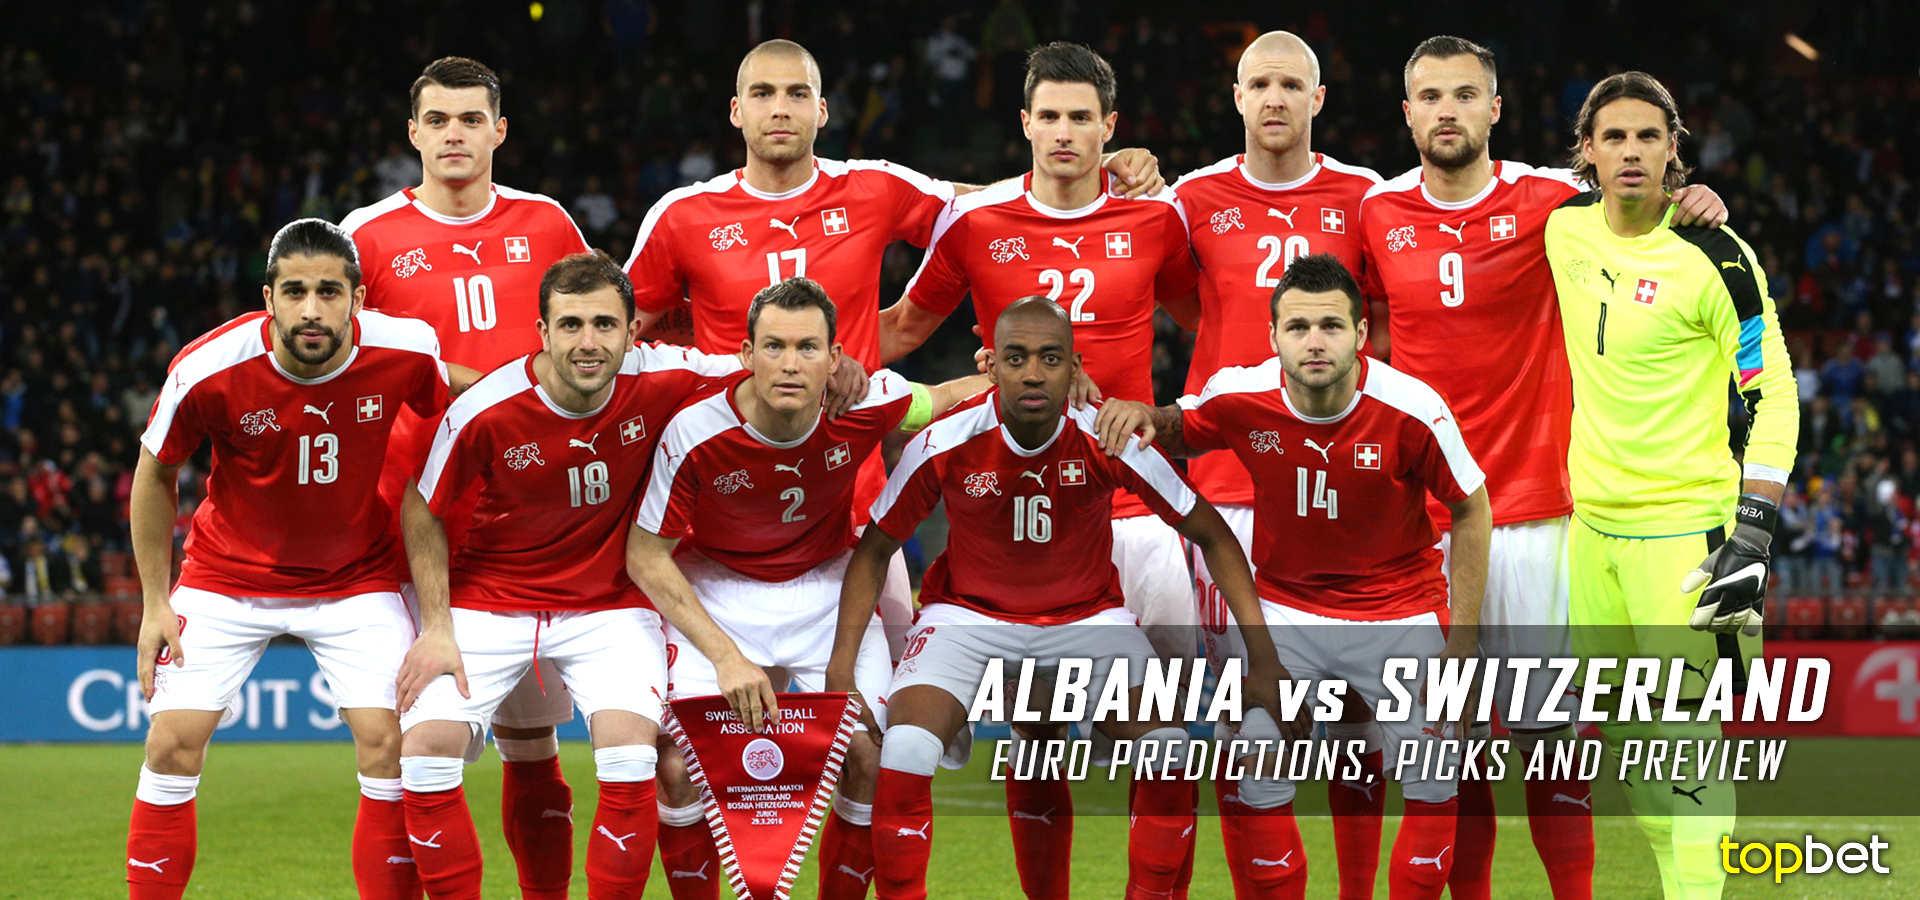 Albania Vs Switzerland 2016 Euro Cup Group A Predictions And Betting Preview June 11